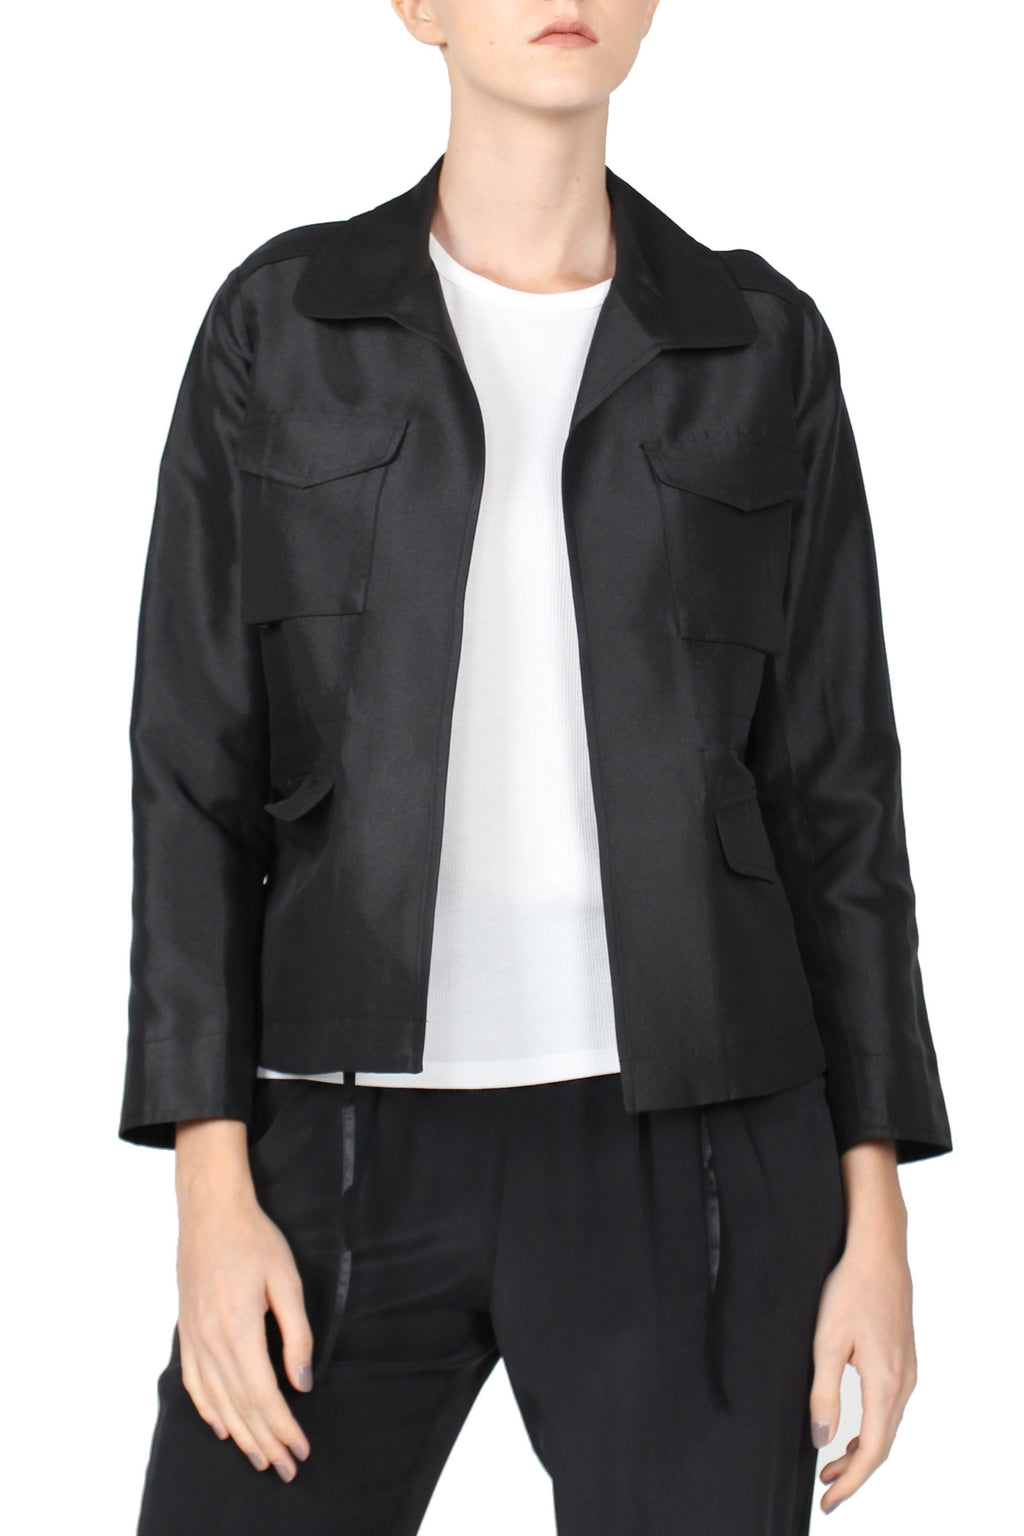 Military Jacket Outerwear Marie France Van Damme 0 Black